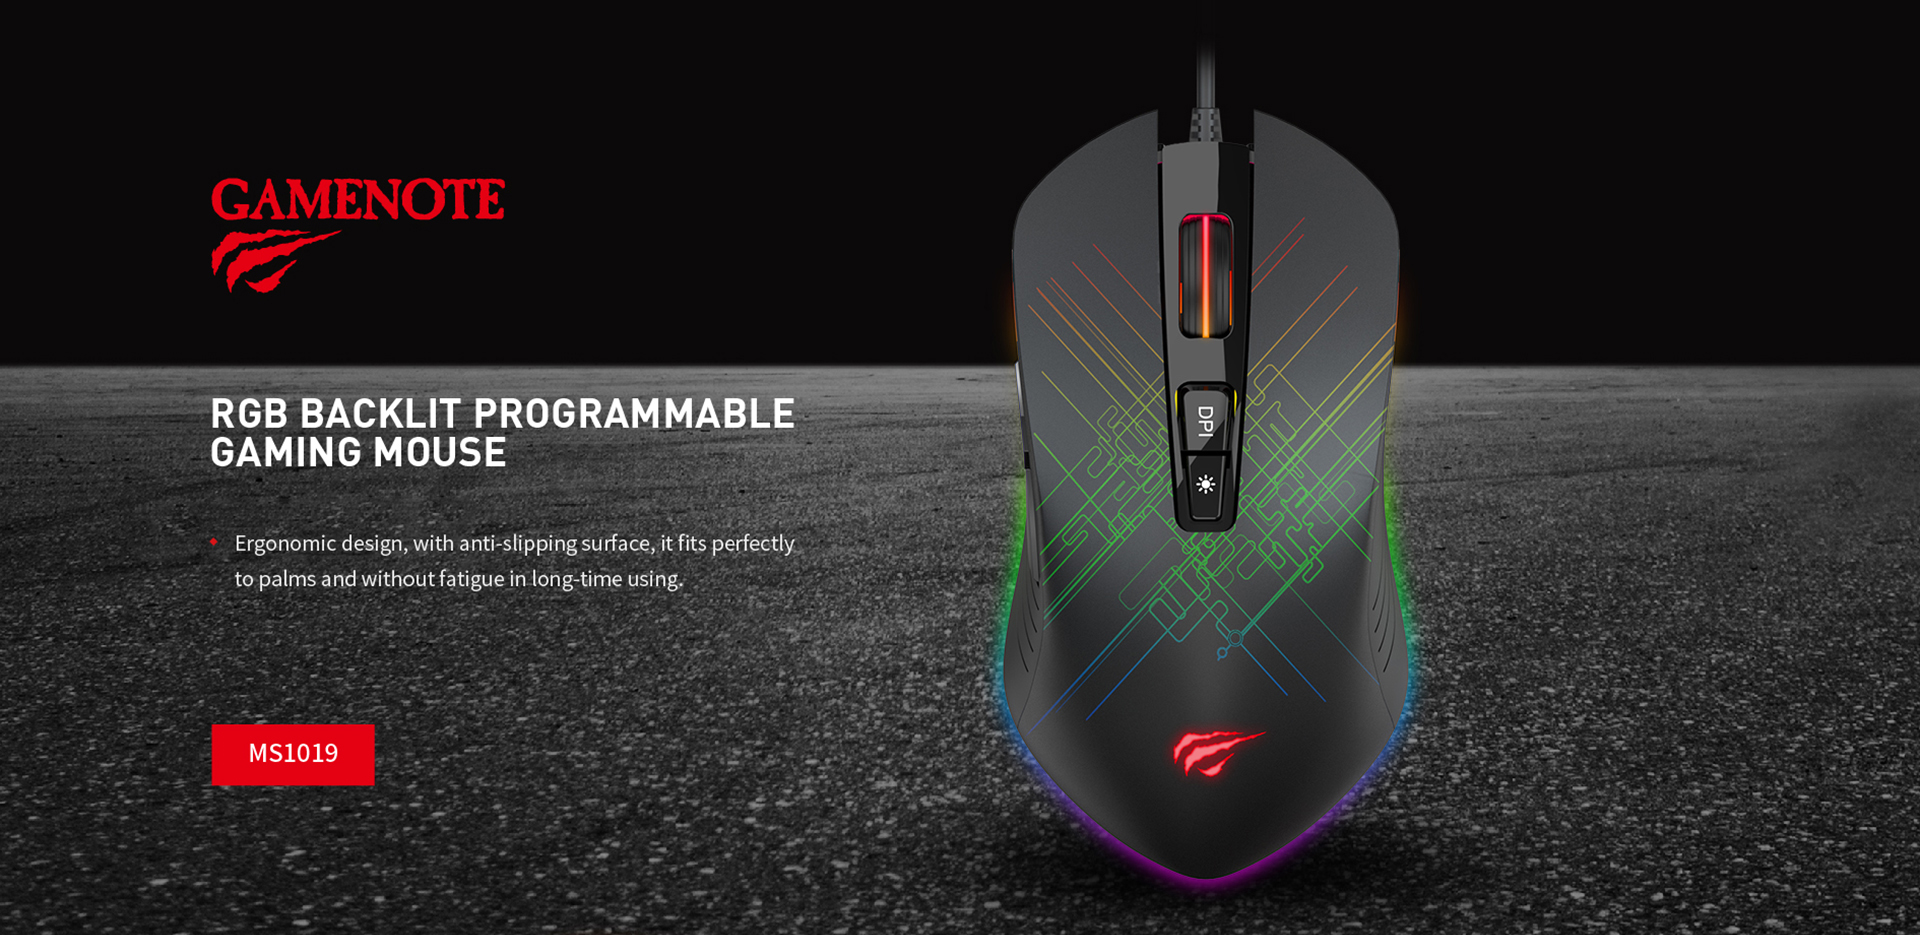 https://delshop.bg/image/catalog/PCs/Mouses/2021/Havit-GAMENOTE-MS1019-RGB-Gaming-Mouse-800-4800-DPI-19727_8.jpg